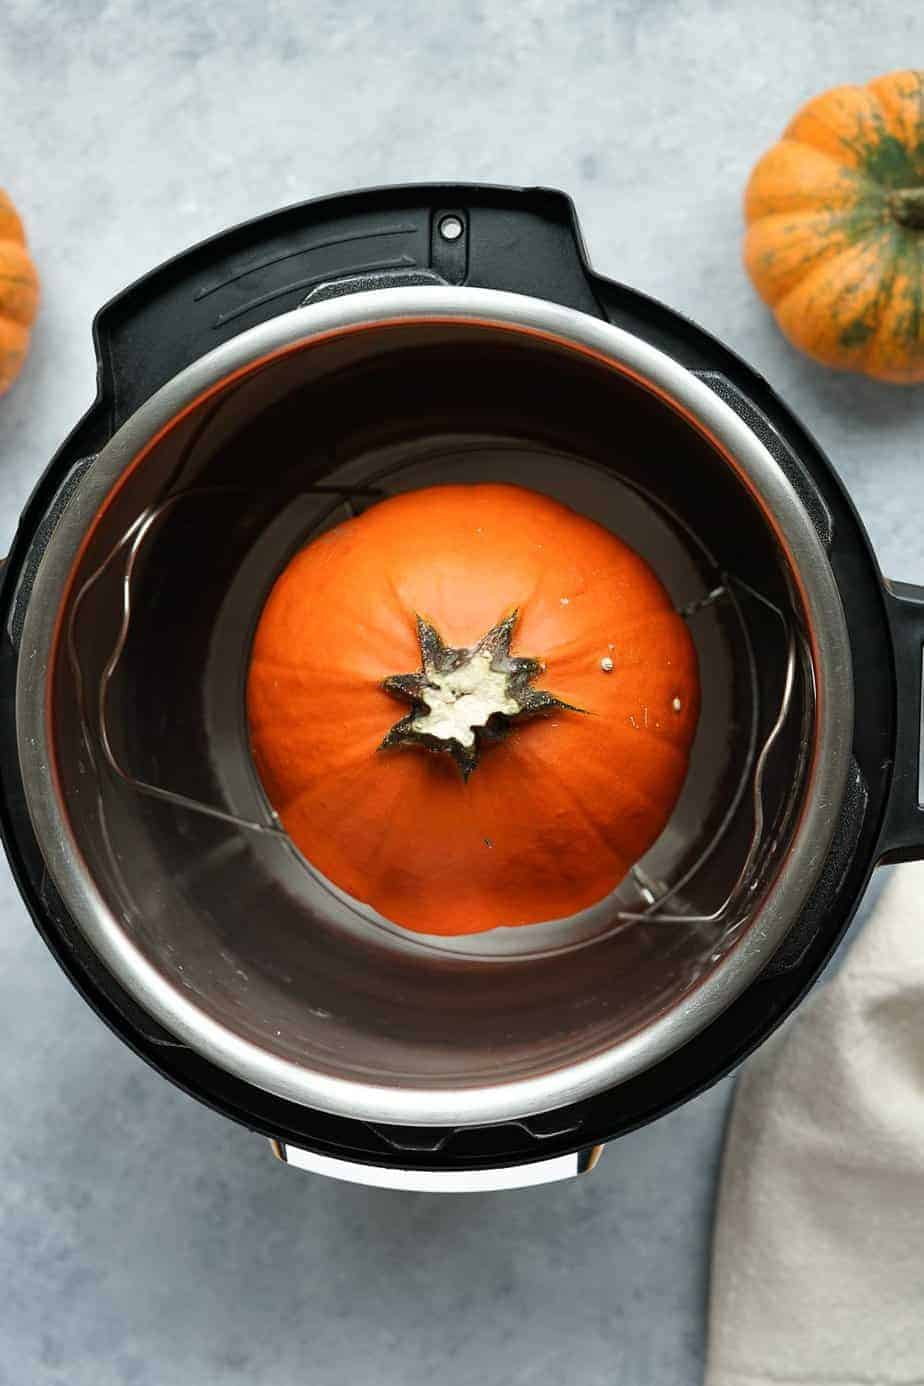 Raw pumpkin inside the instant pot to be steam.